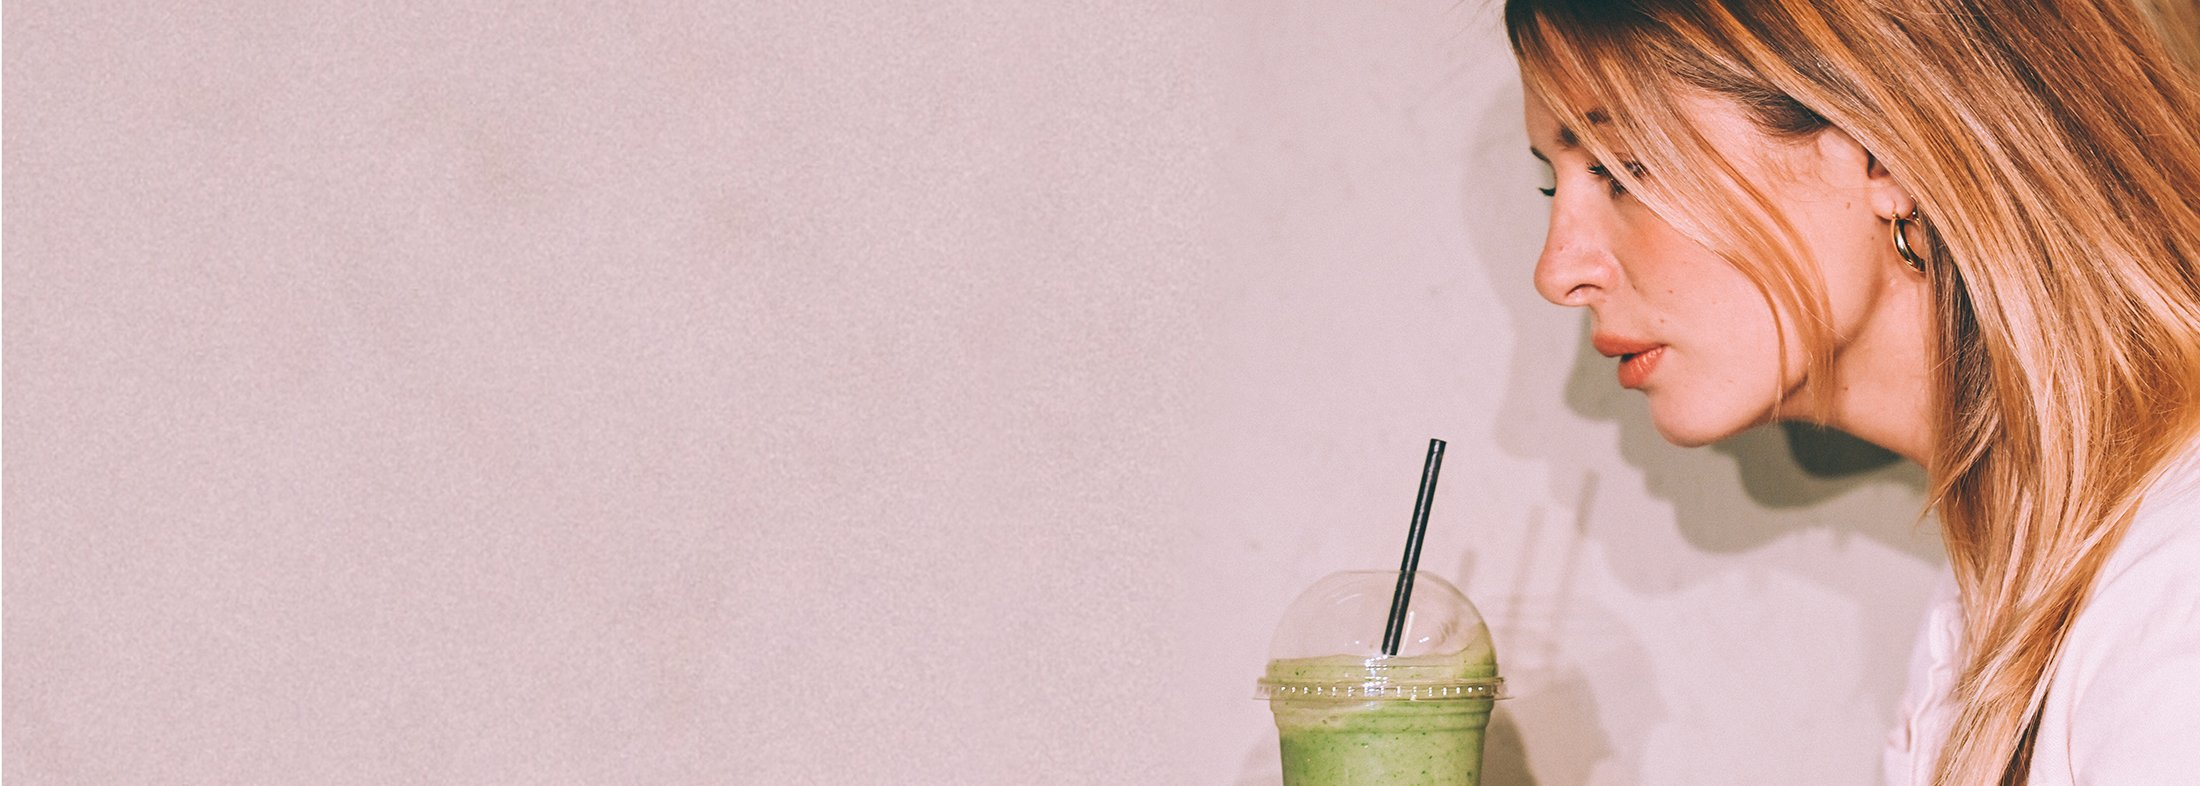 Woman drinking healthy smoothie to combat stress related hair loss